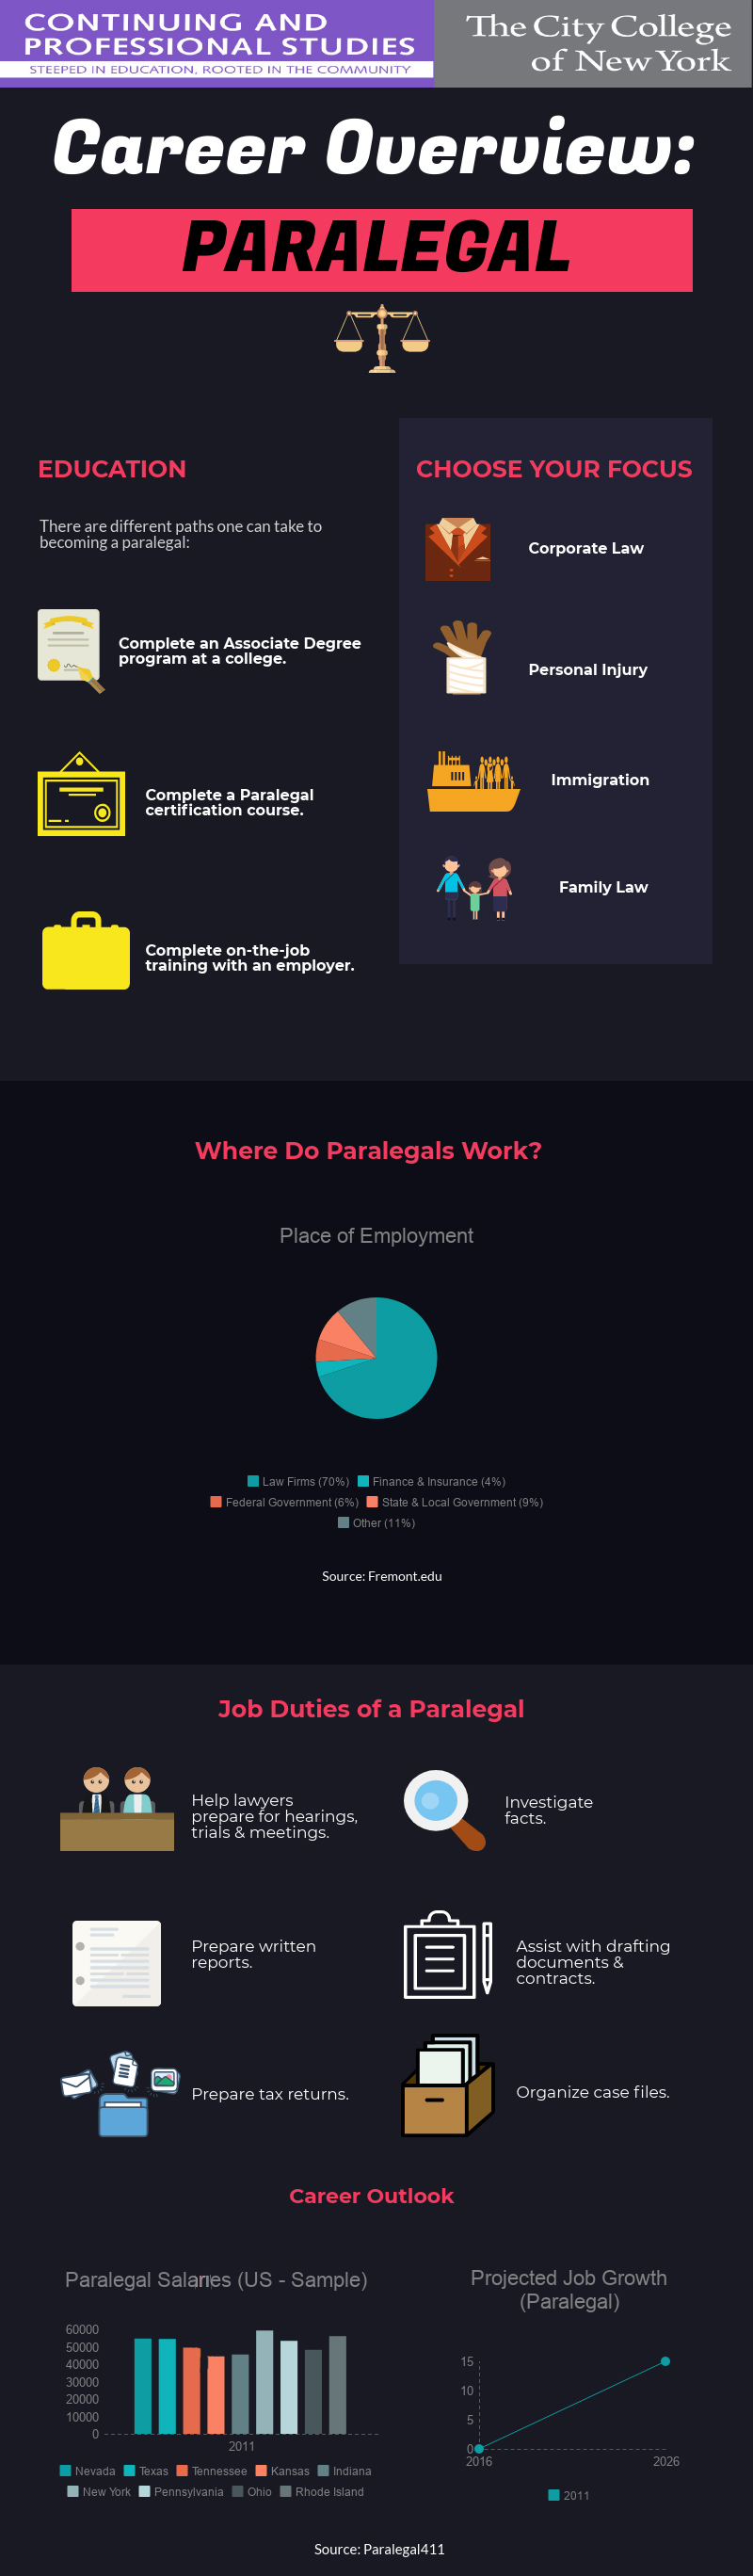 Career Overview For Paralegal